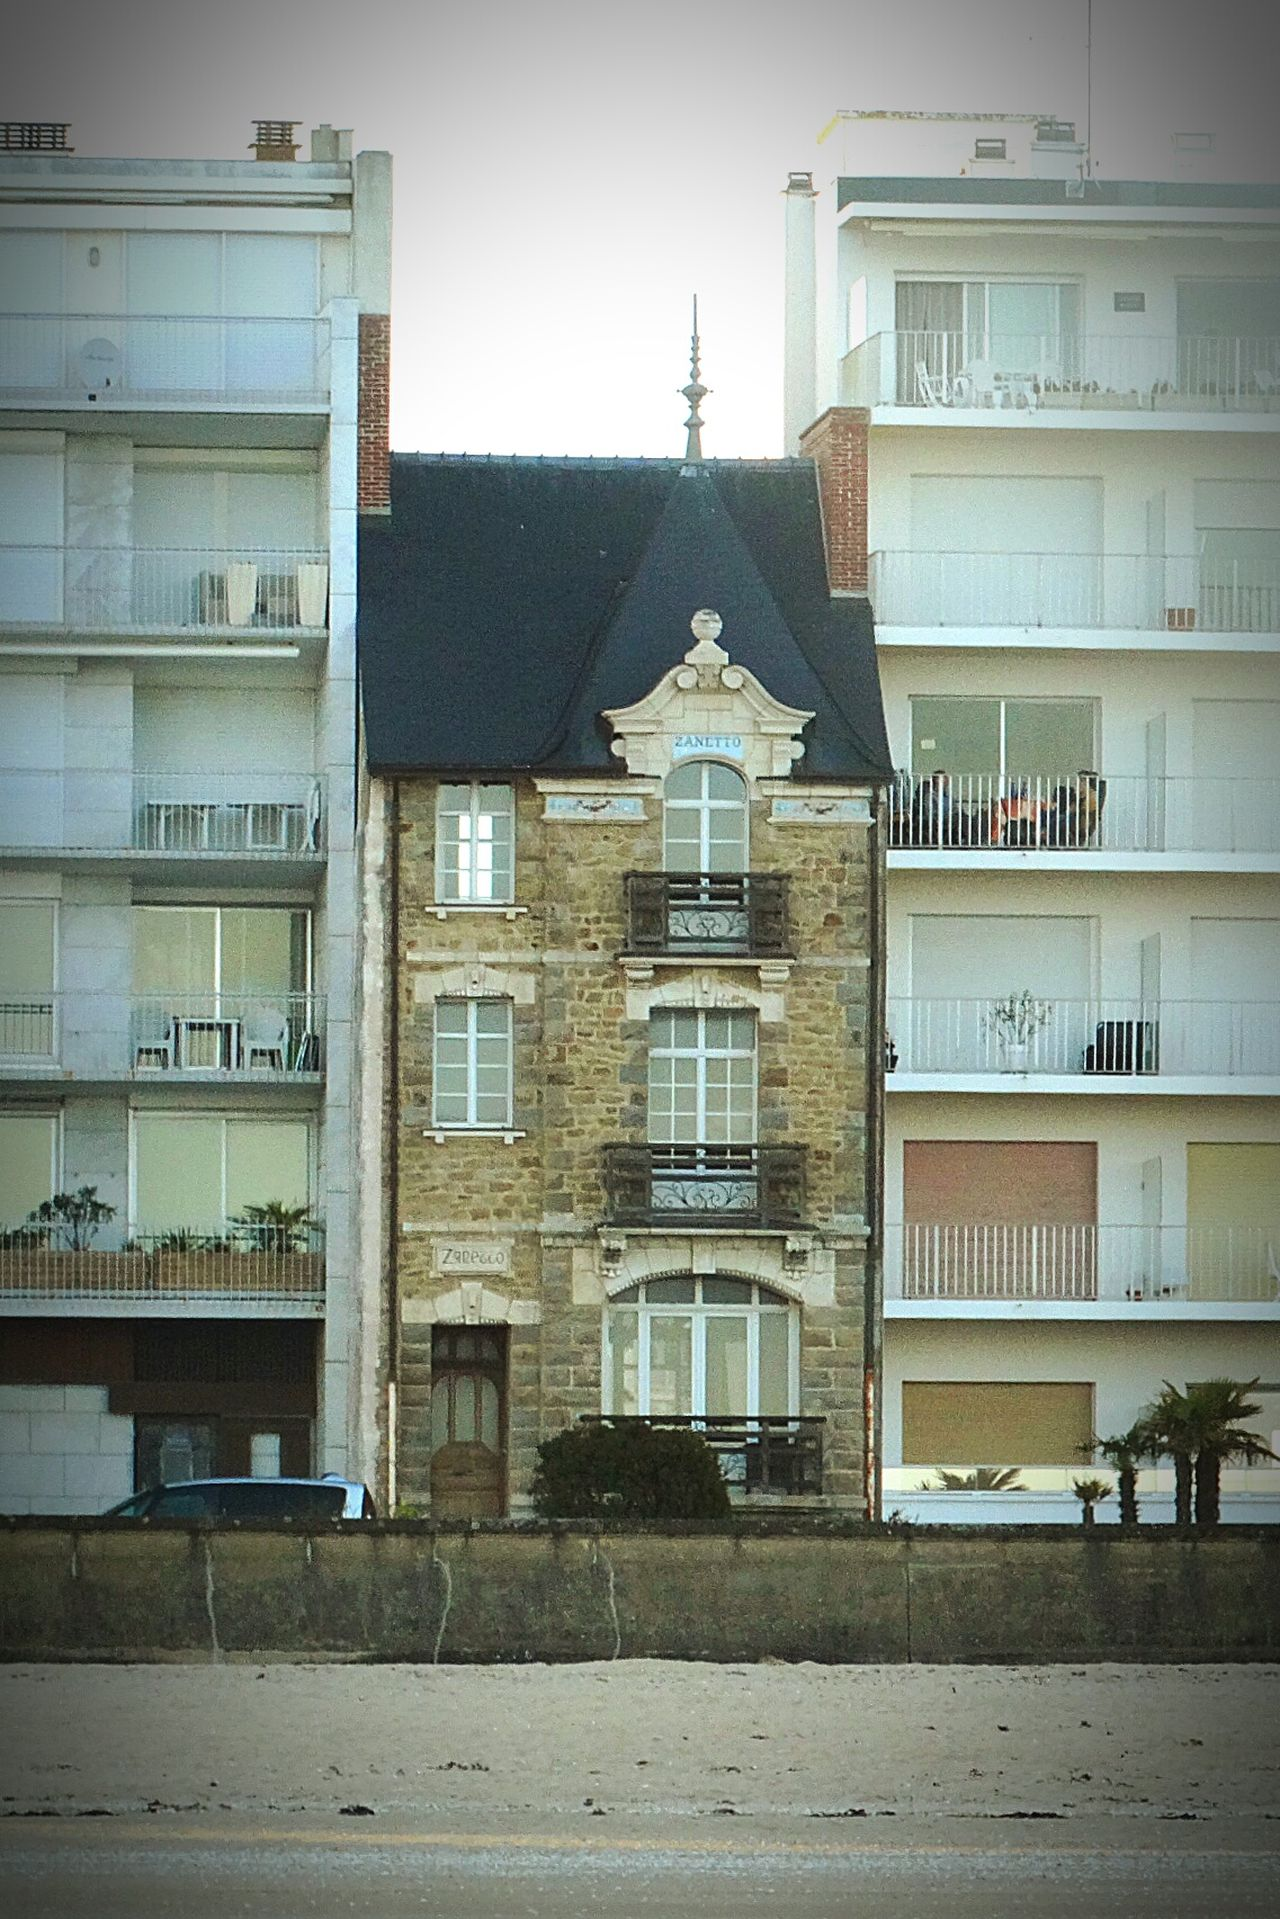 Have you ever felt like a sandwich? Architecture Appartments Progress Holding Out Last Stand The Odd One Out Defiance Sandwich Contrast Development La Baule Check This Out Hanging Out Sweet Shots Relaxing Taking Photos France Showcase June